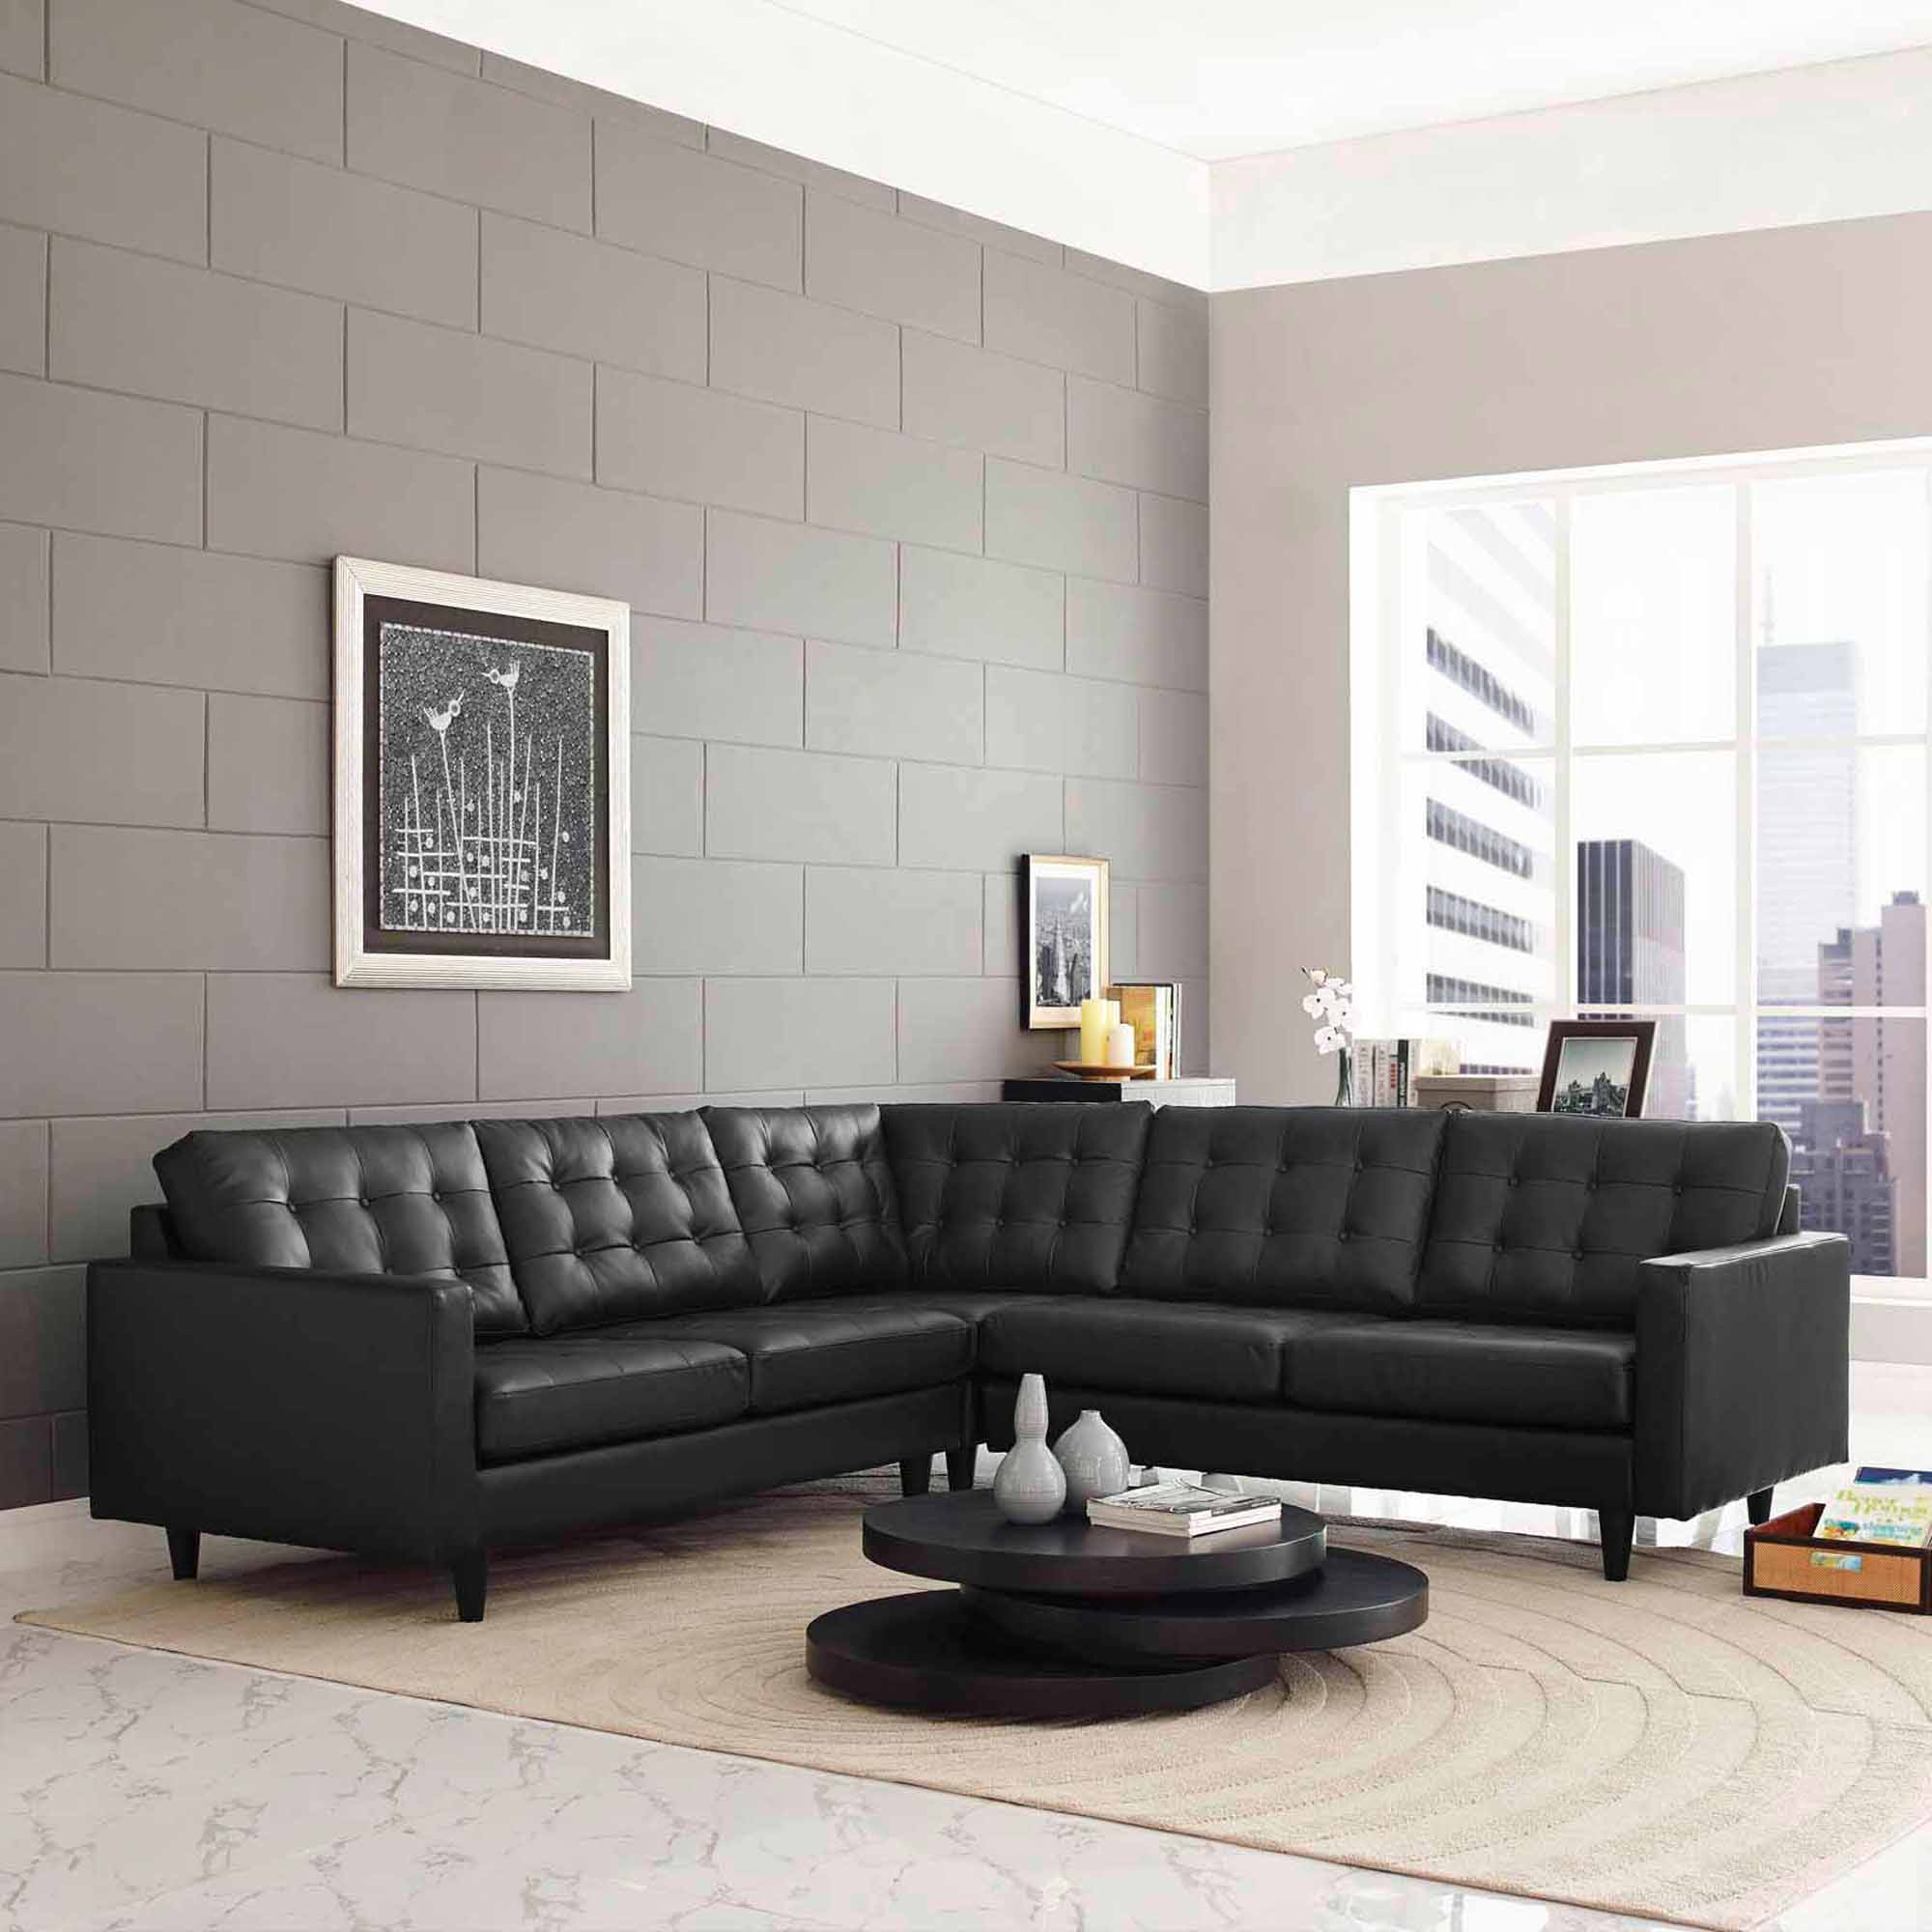 Modway Empress 3 Piece Leather Sectional Sofa Set Multiple Colors